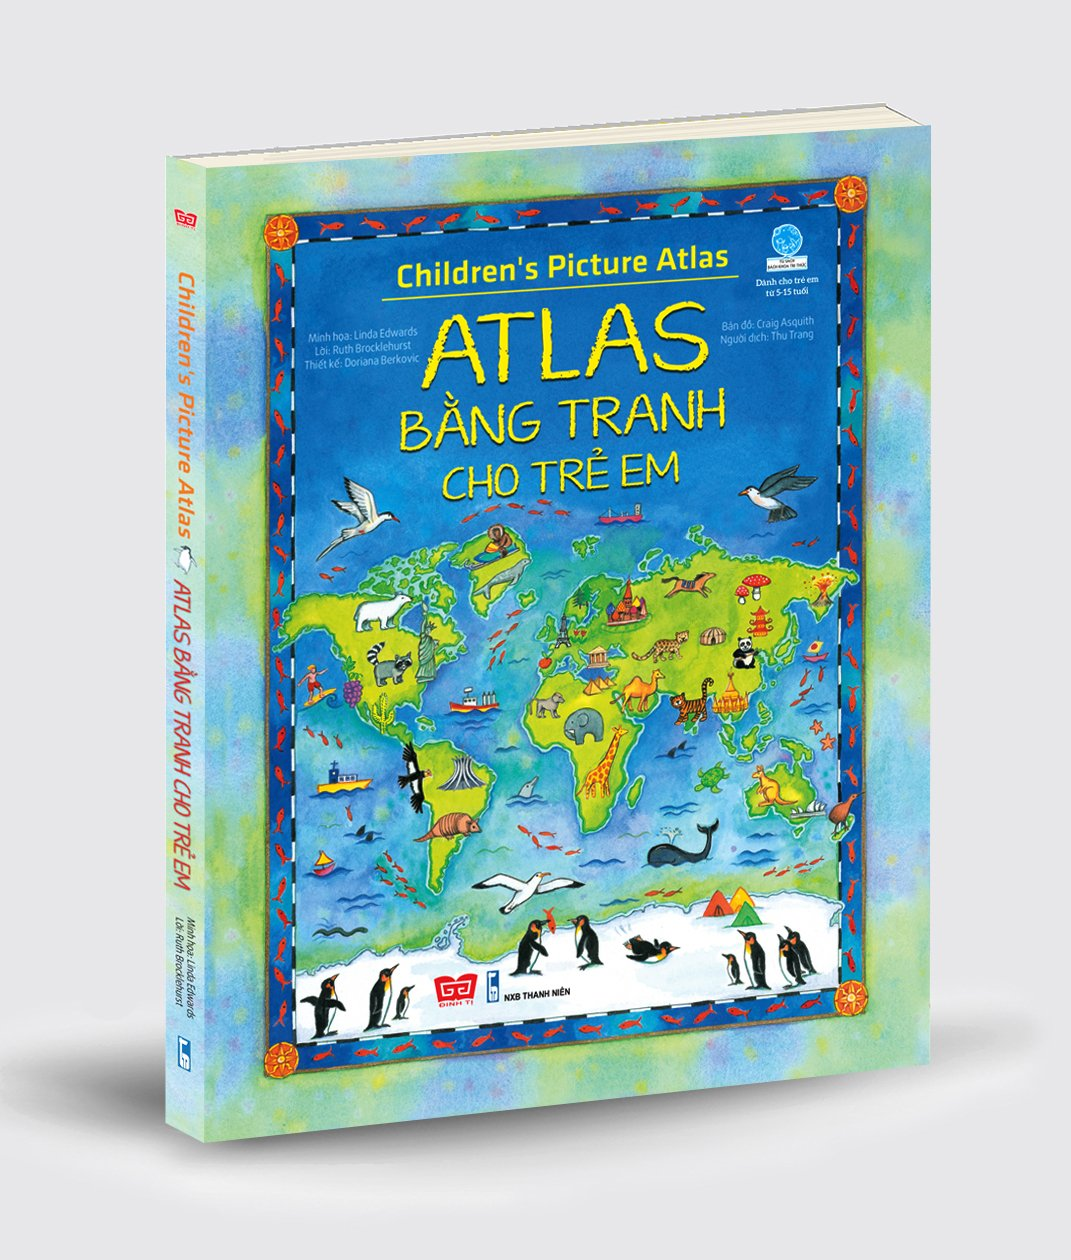 Children's Picture Atlas of Animals - Atlas bằng tranh cho trẻ em